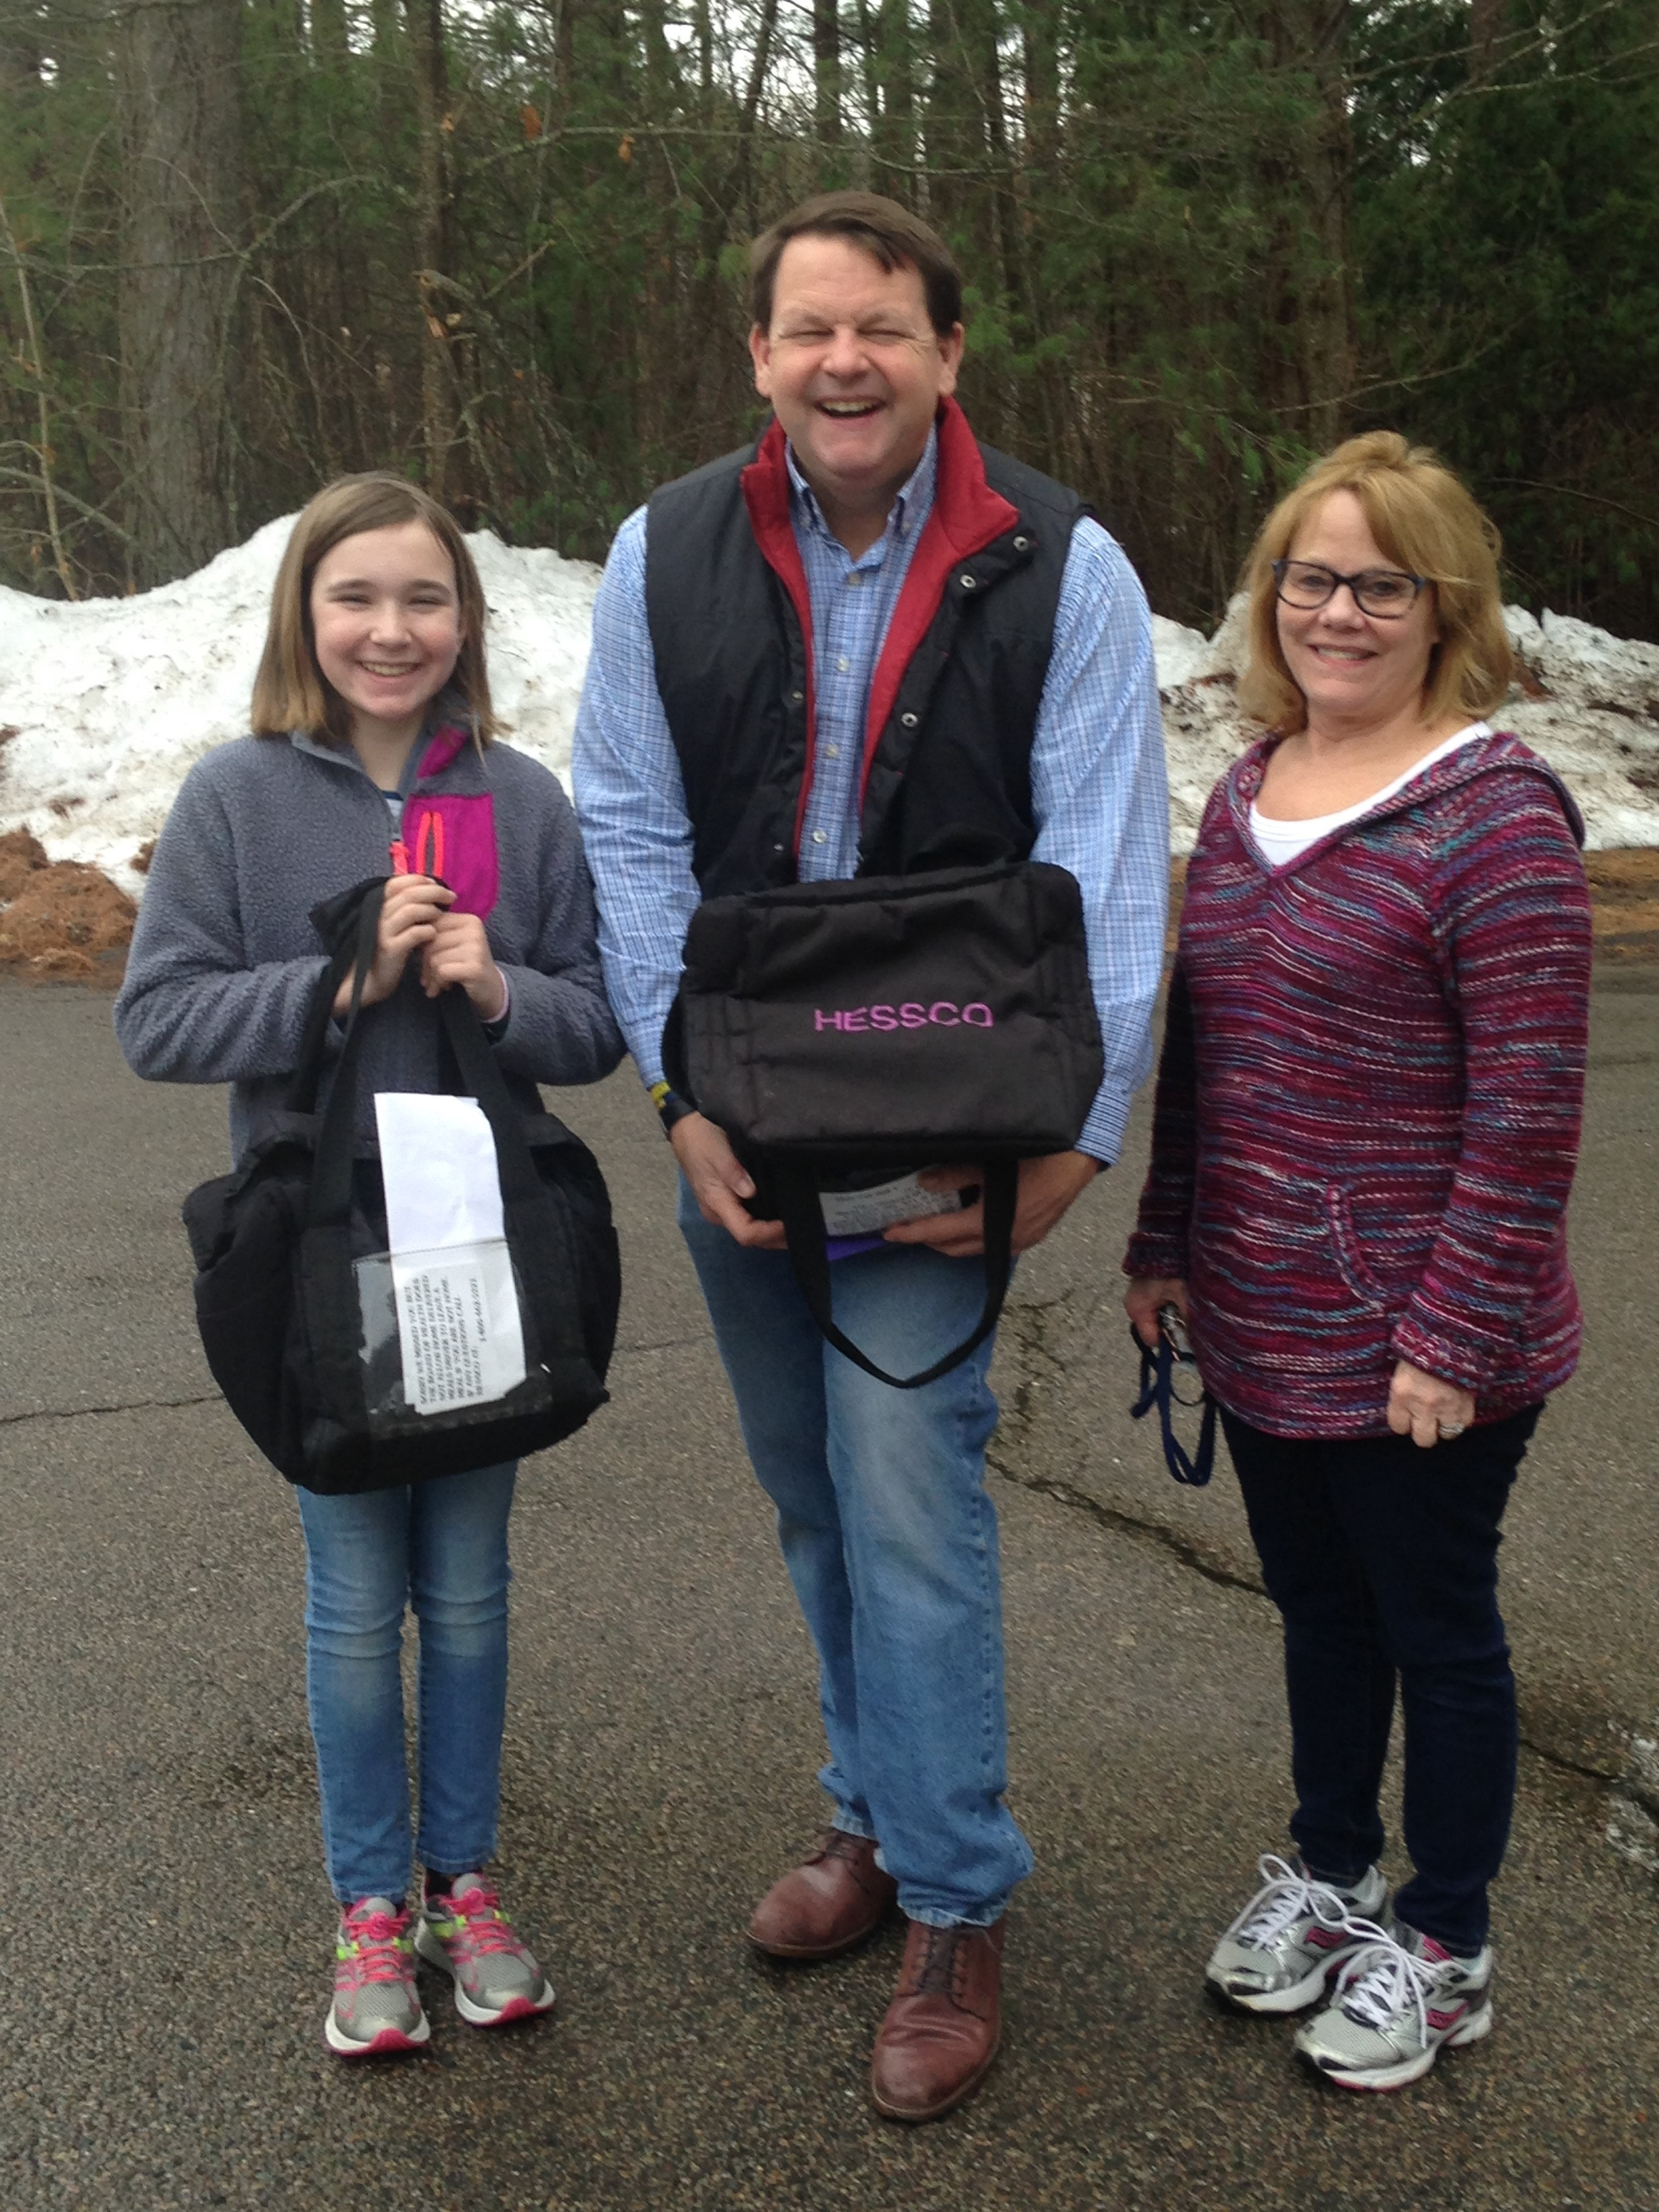 Rep Dooley, Dtr Emma doing her community service for school and driver Sara Wrentham